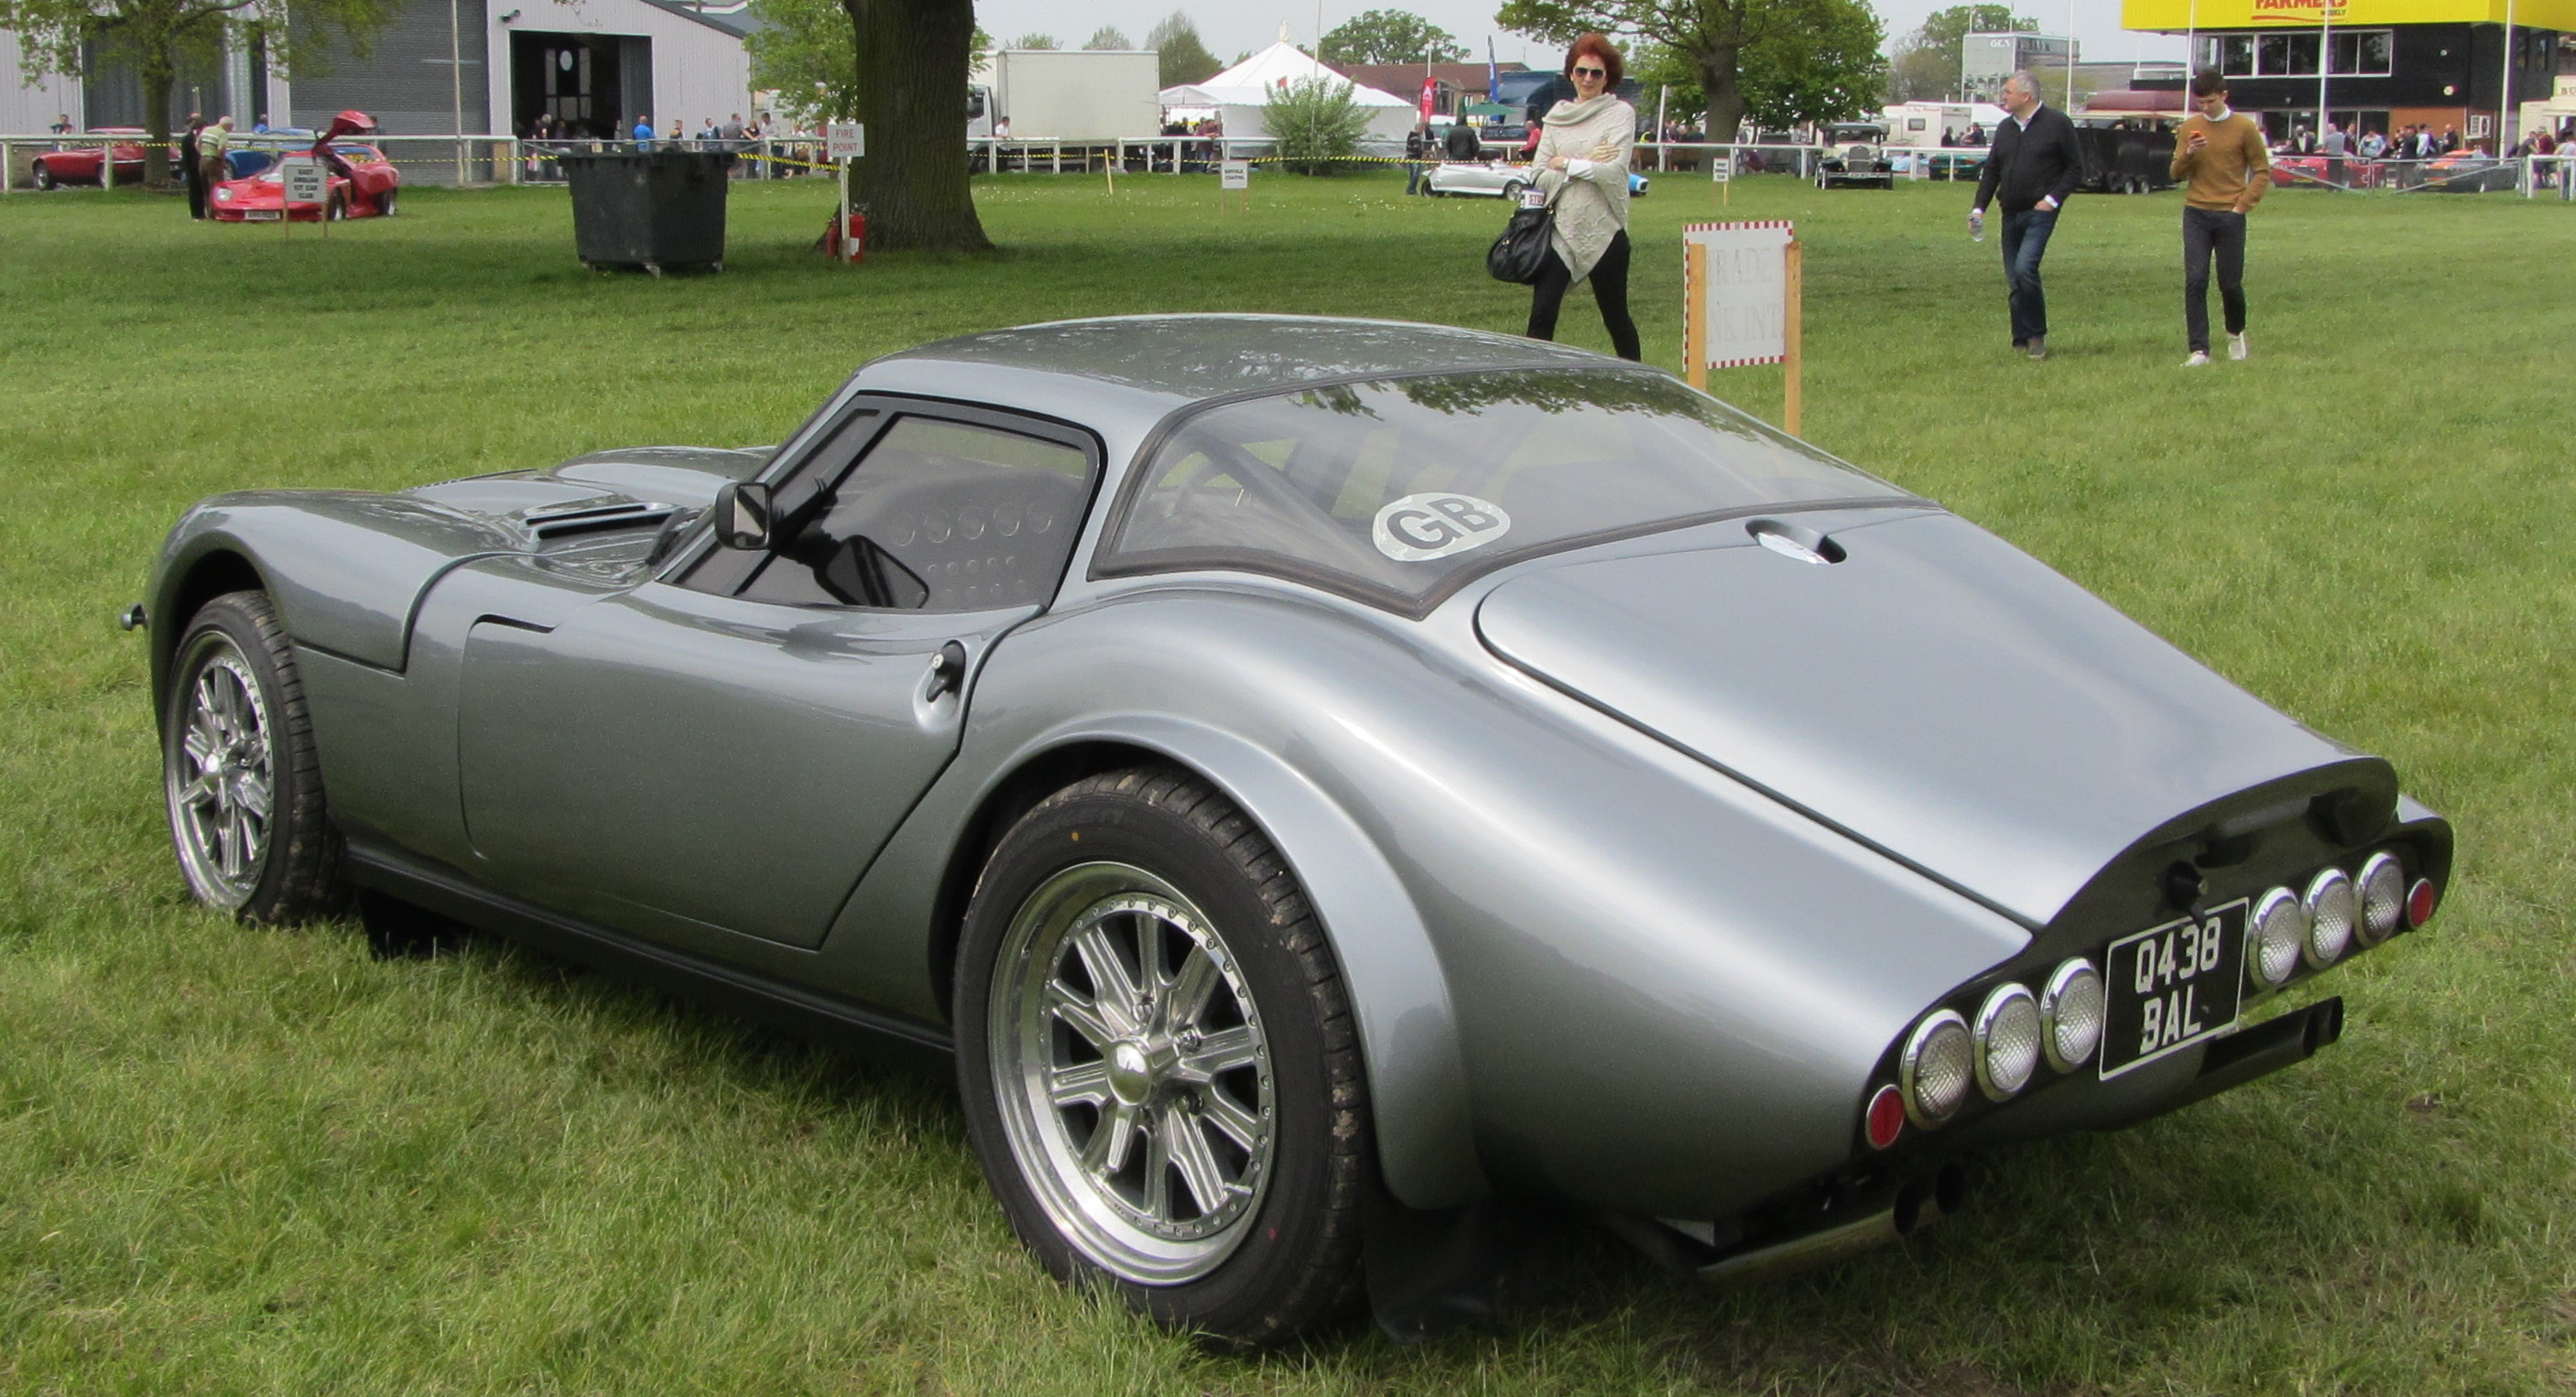 Stoneleigh Kit Car Show 2014